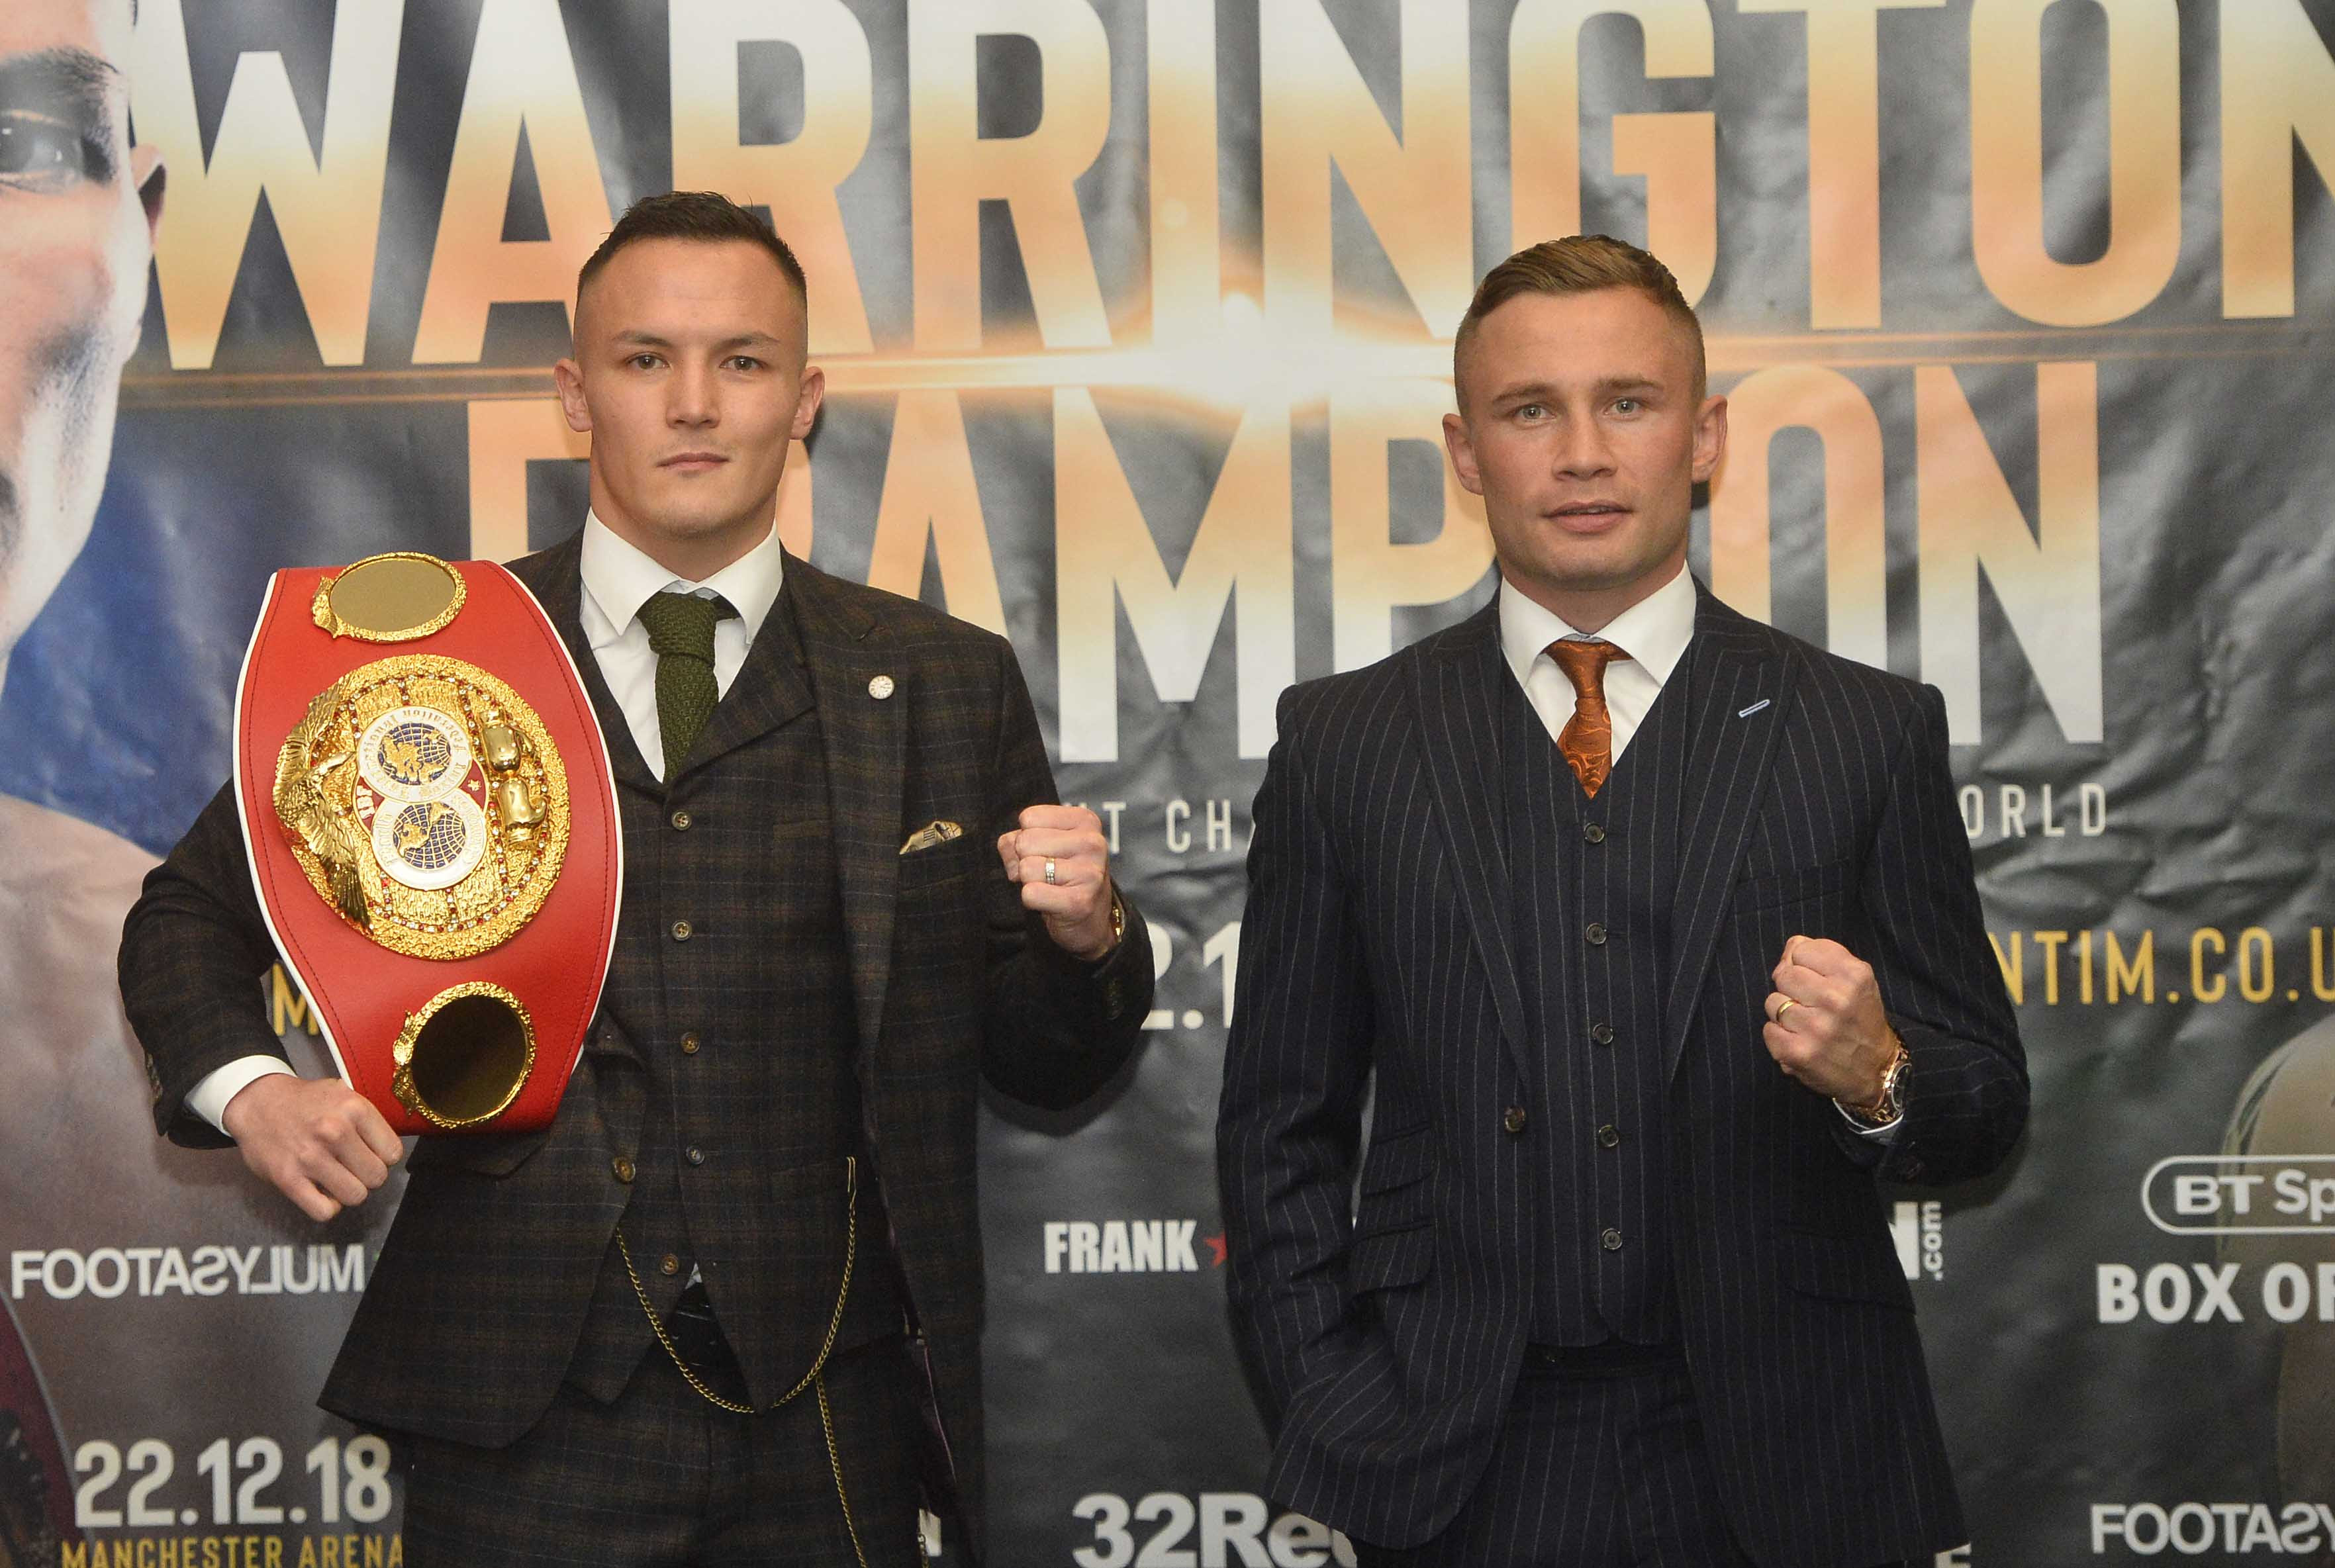 Warrington vs Frampton